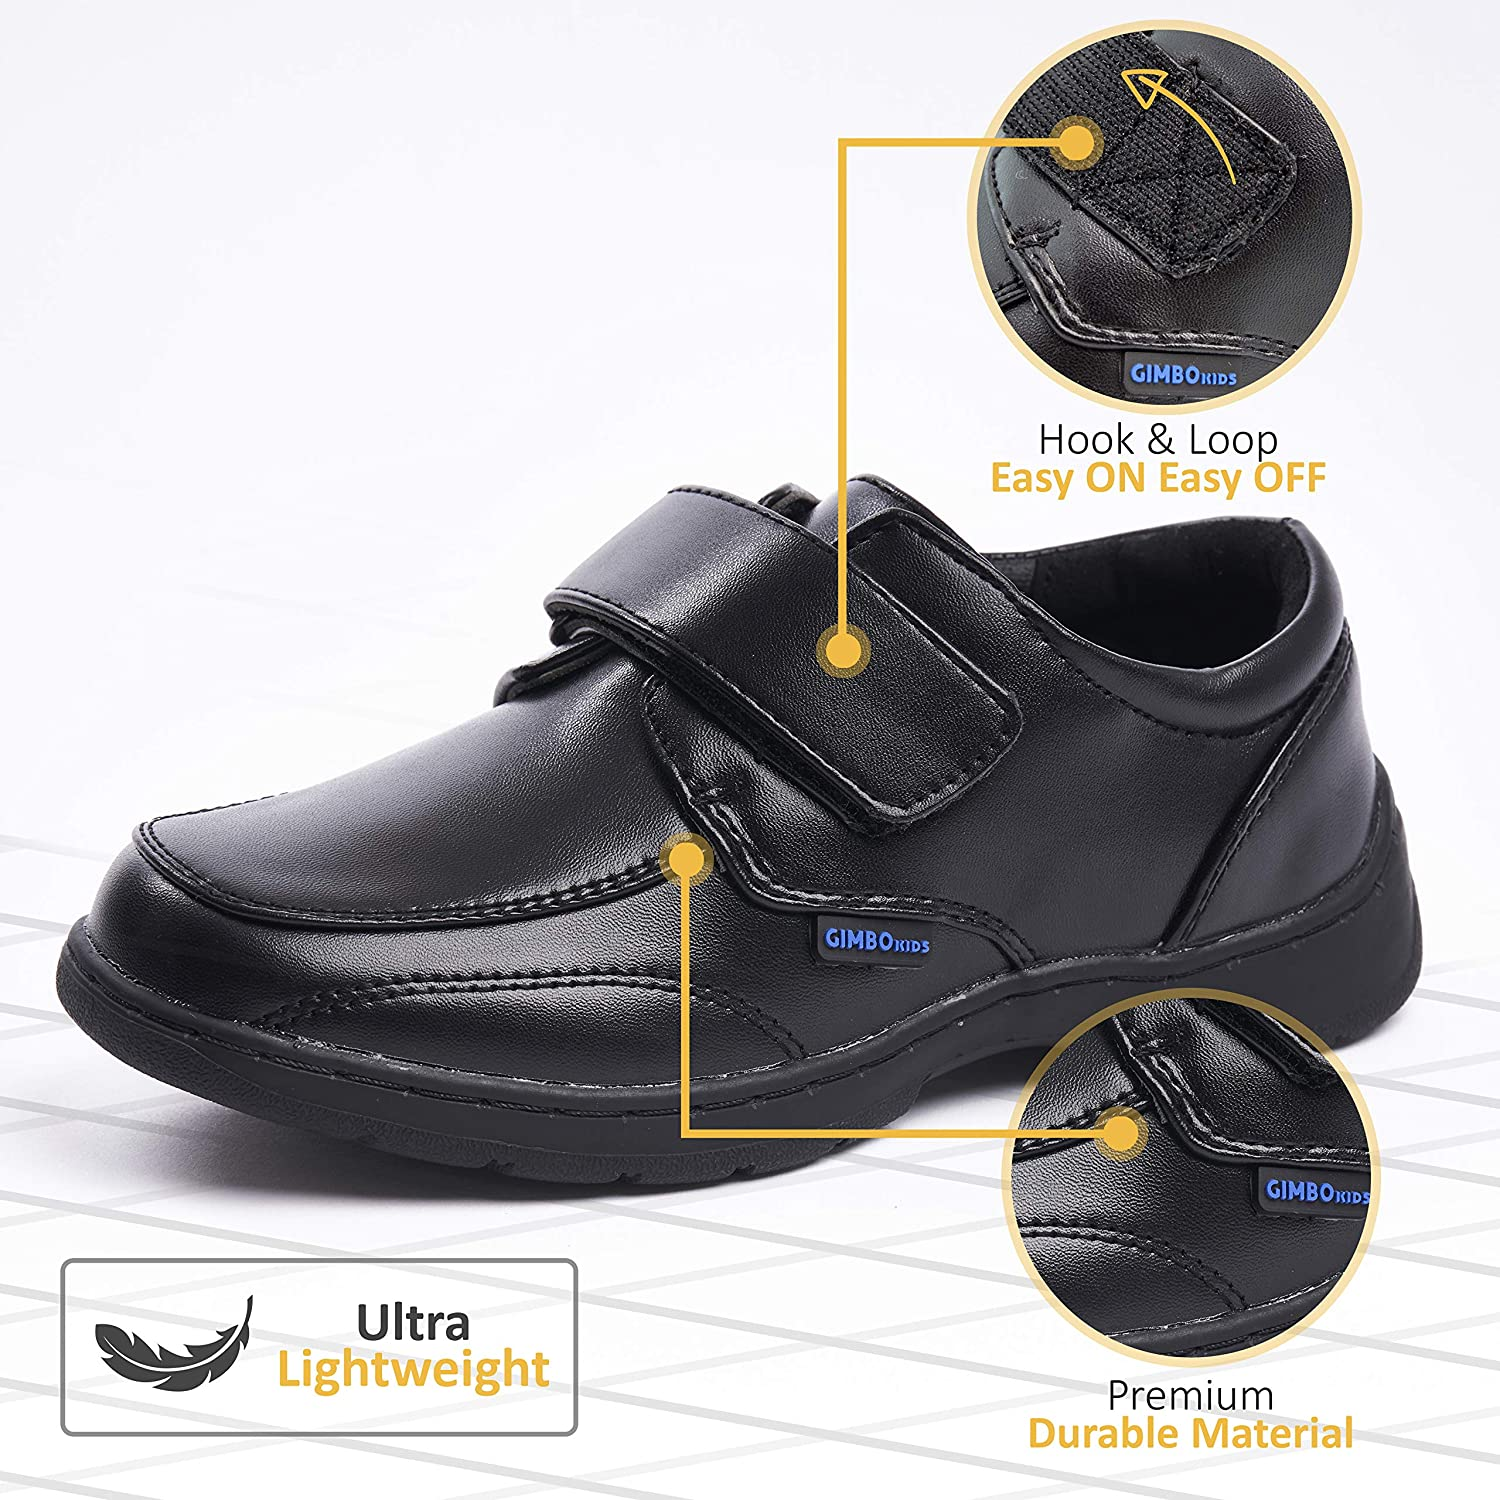 Uniform Dress Shoes for Boys Black Mary Janes School Shoes for Girls